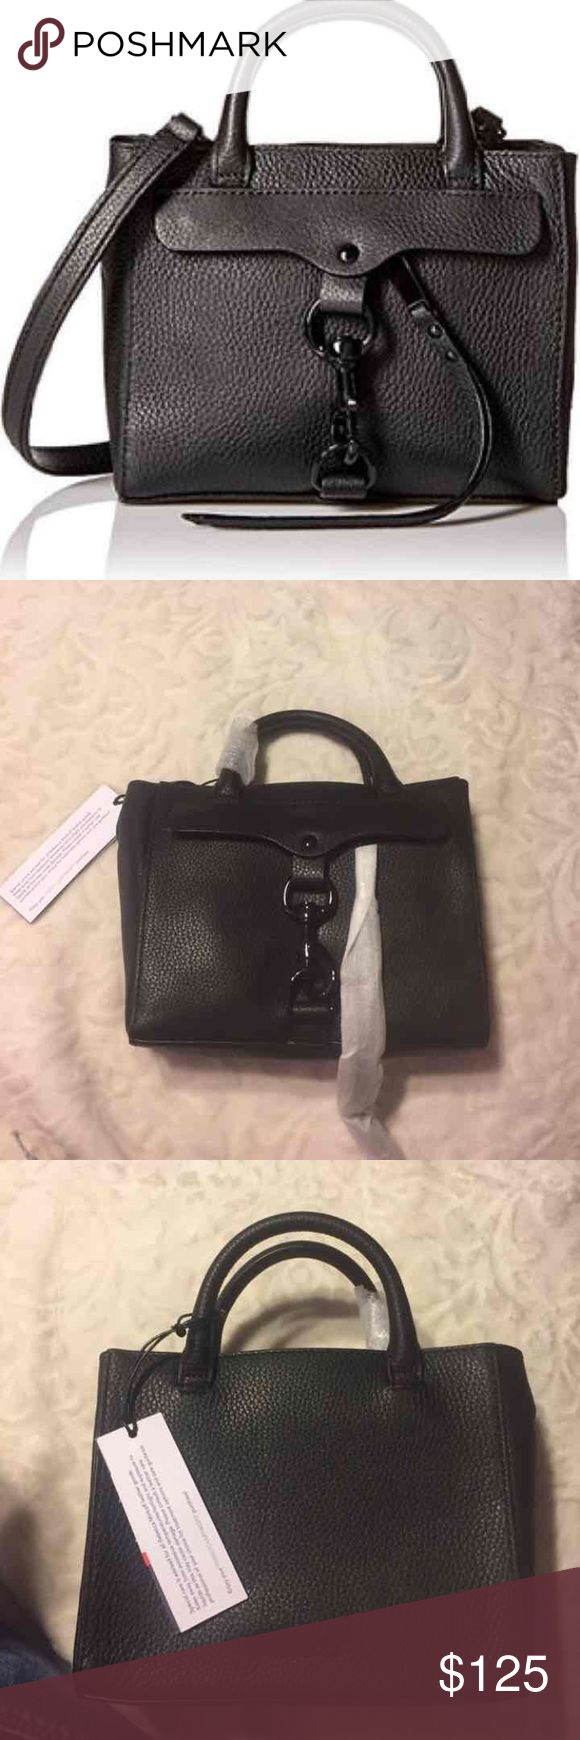 Rebecca Minkoff purse Small dog clip tote cross body. Beautiful soft Black leather and black hardware. Comes with long strap and with dust bag. Brand new one of a kind purse. Dimensions: 7.5x6x3 ❤️MAKE AN OFFER❤️ Rebecca Minkoff Bags Mini Bags